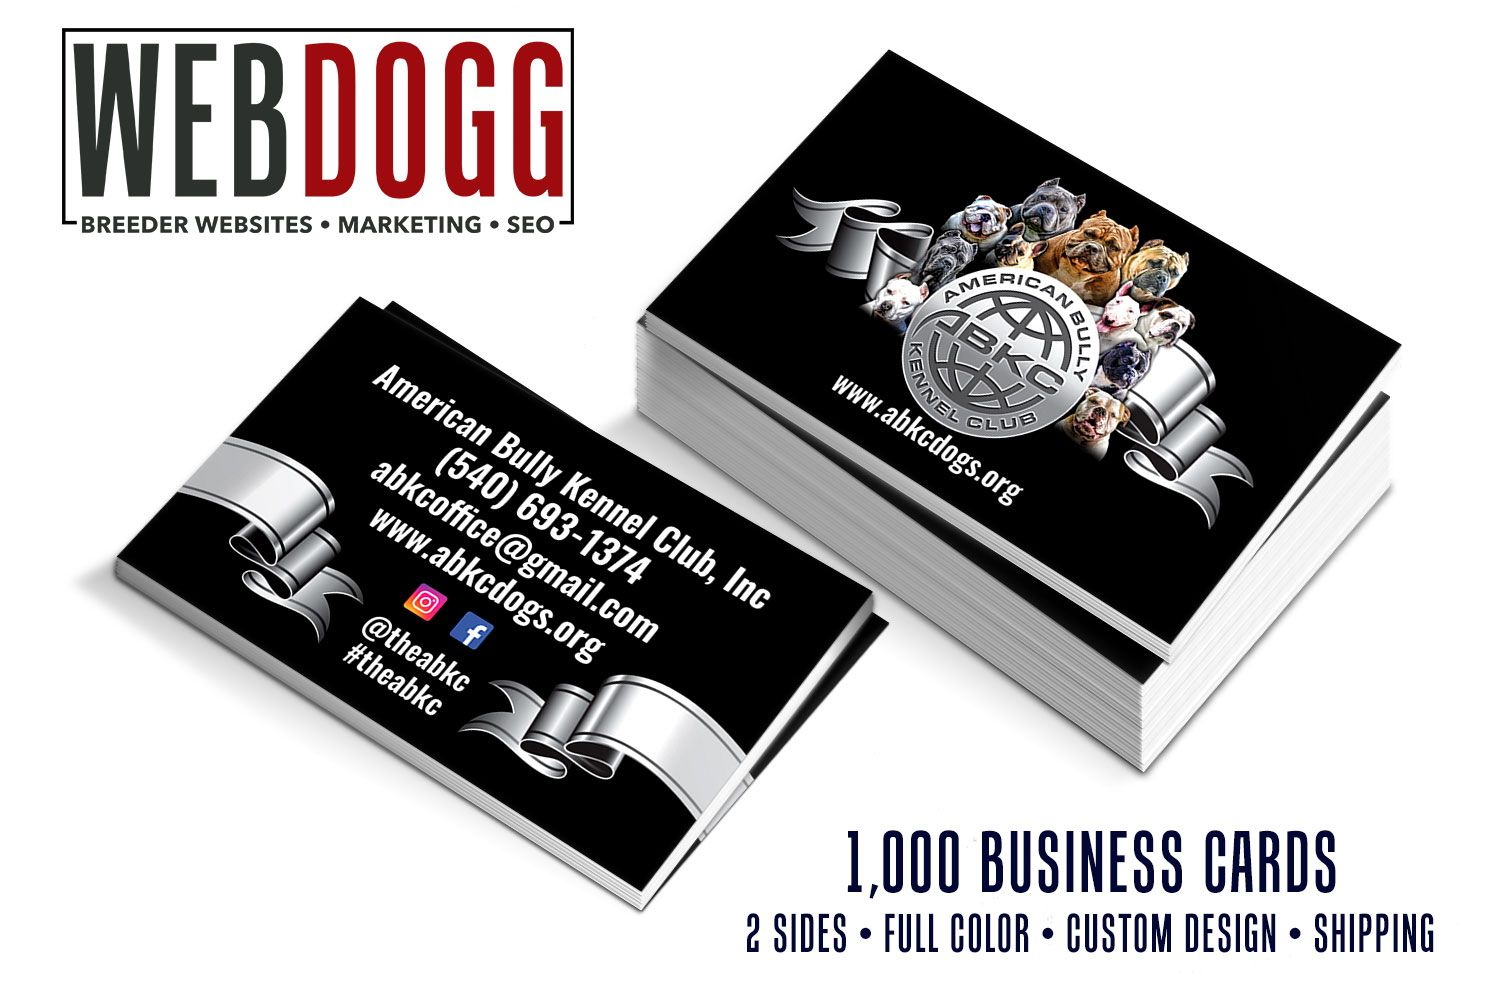 Business Cards For Abkc Webdogg Breederdesigns Dogbreeder Graphics Breederlogo Breederdesign Breede Printing Business Cards Dog Business Kennel Business